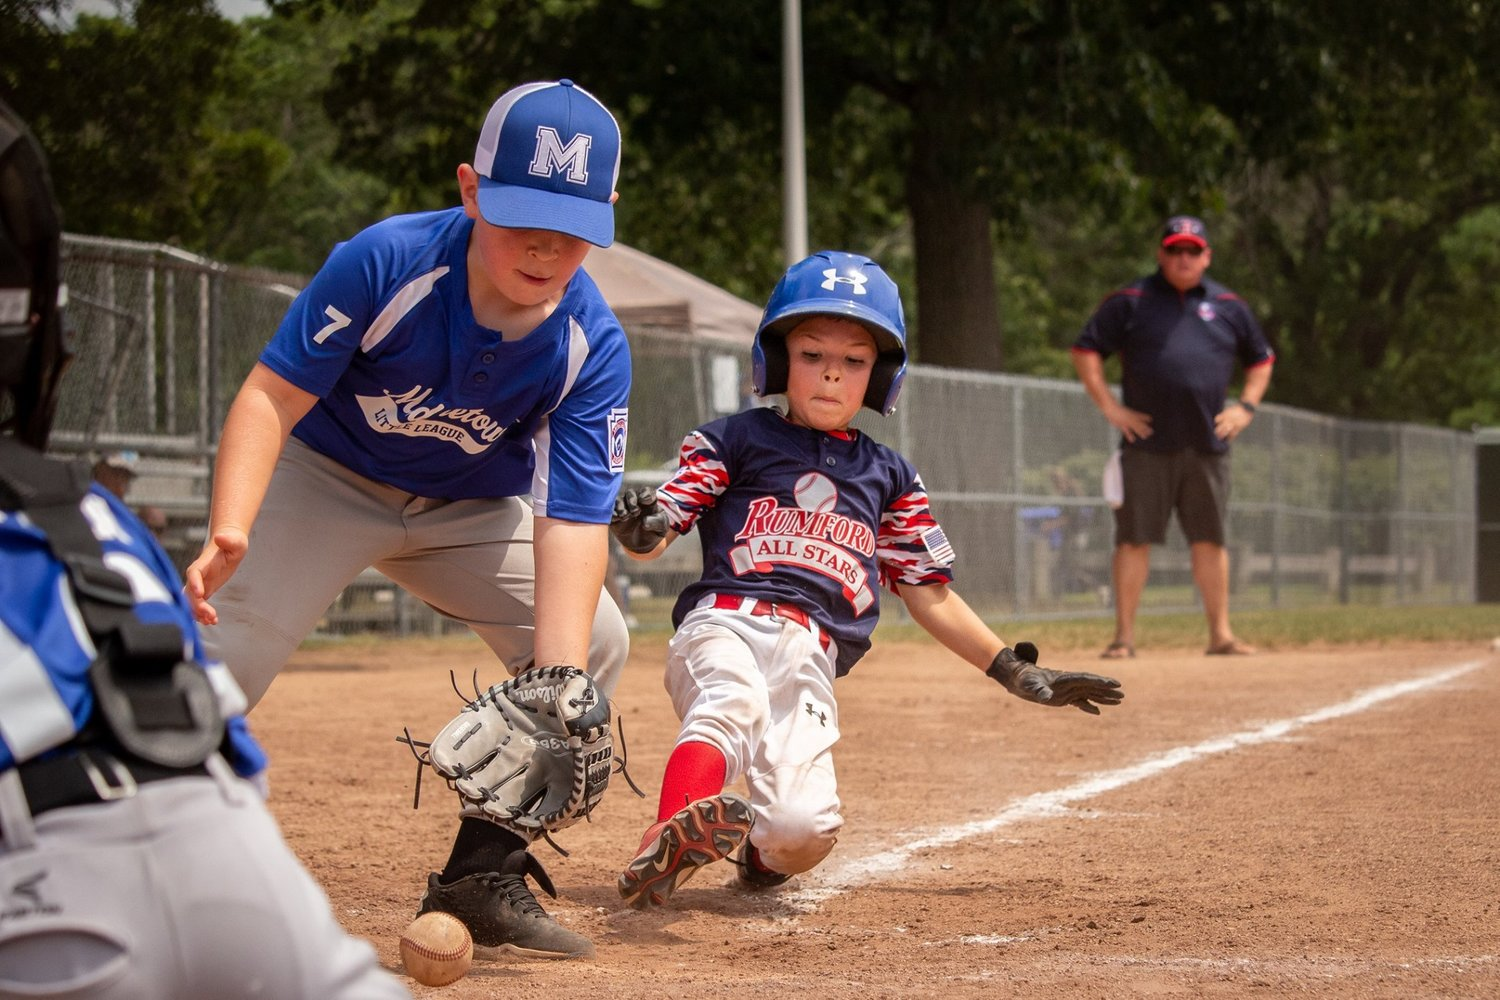 Rumford LL scoring another run. Photo by Nina Levesque.